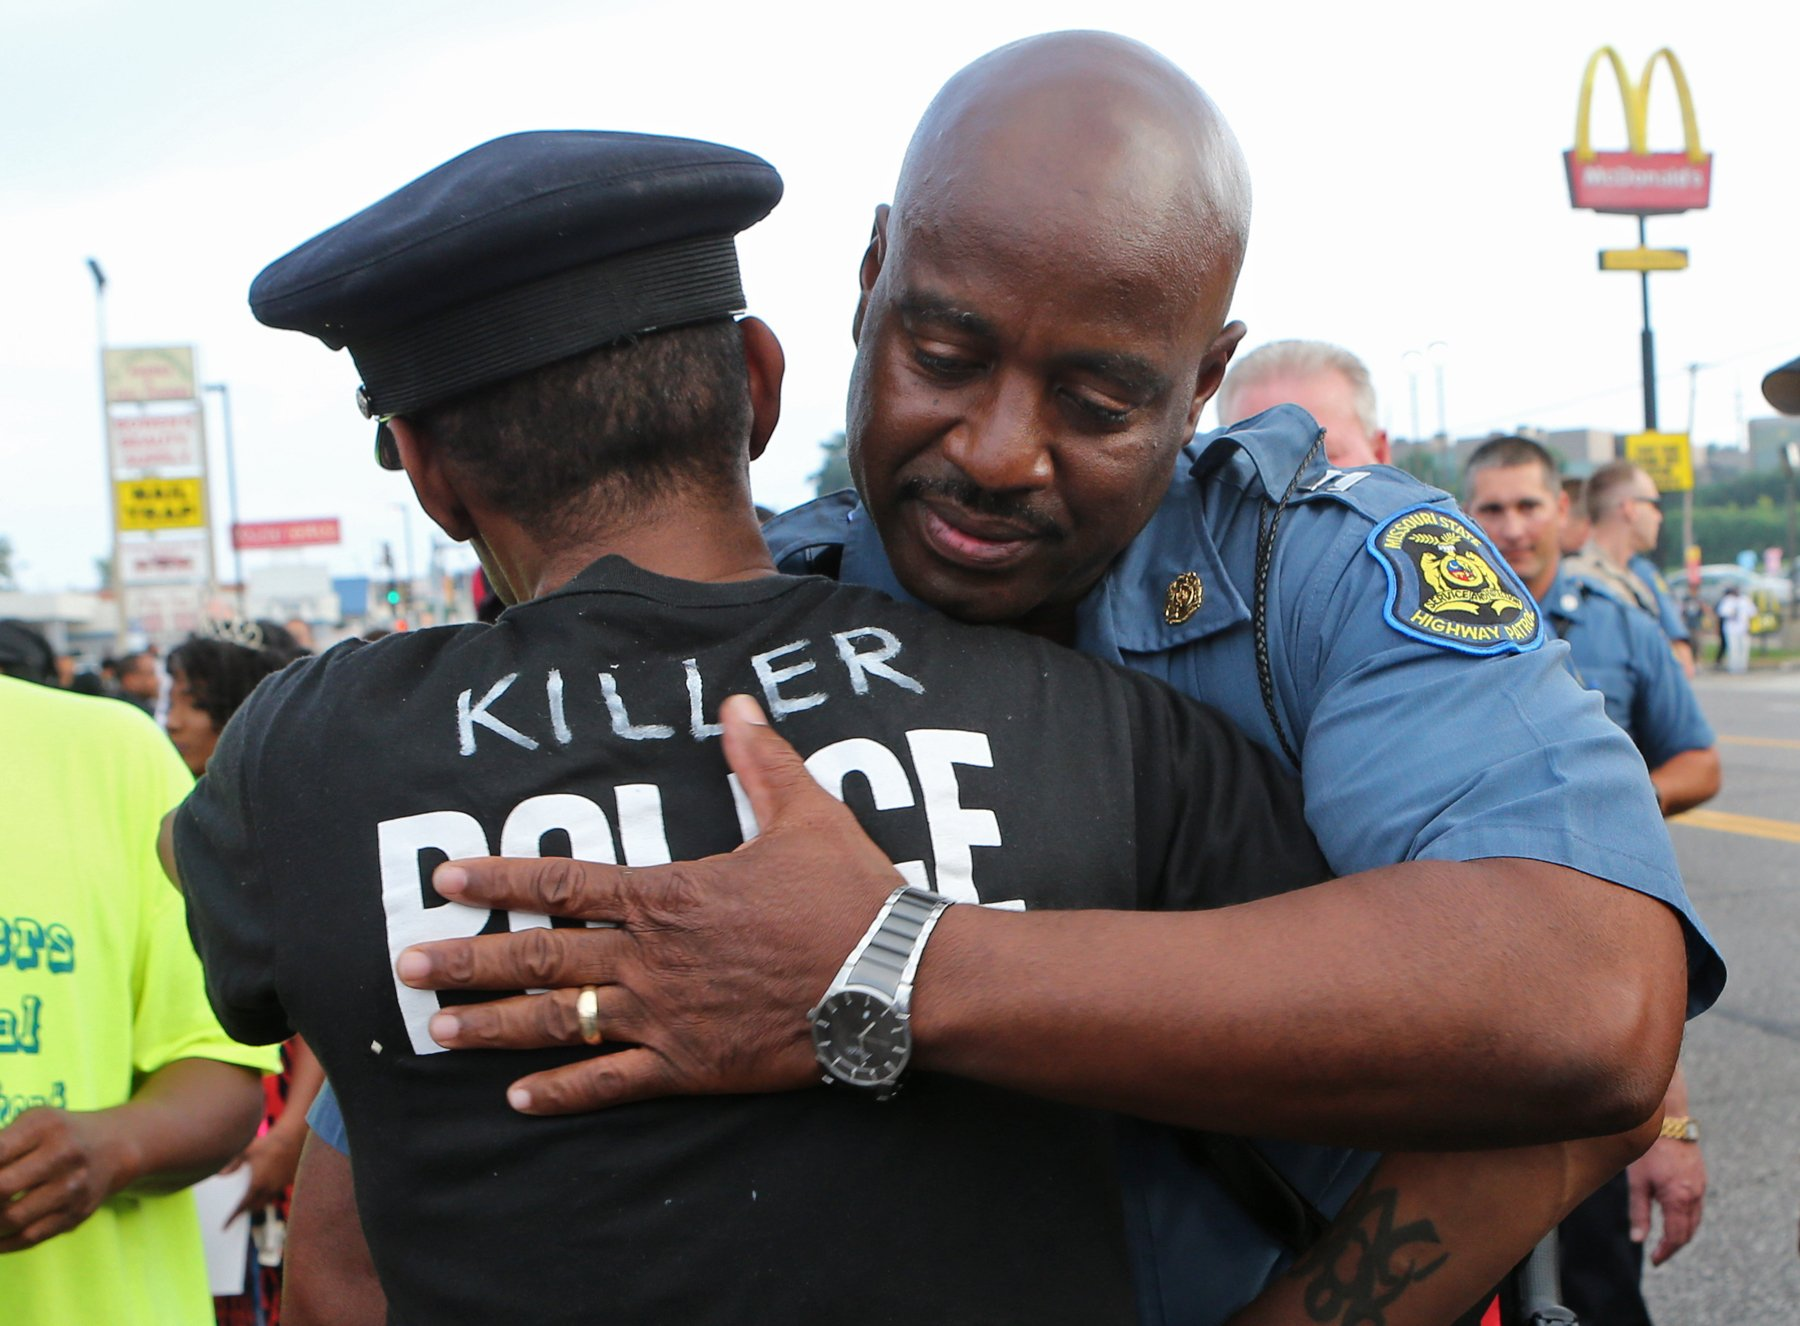 """Mo. Highway Patrol Capt. Ron Johnson hugged Adrian (who wouldn't give his last name) in Ferguson on Sunday afternoon, Aug. 17, 2014, on W. Florissant. Adrian said that he was a St. Louis city police officer for ten years. He said he could see the issue from both sides but he said the cop (Darren Wilson) went way beyond the use of prudent force. """"He had many more options to him before he went for his gun,"""" Adrian said. """"If the suspect was too big for him, he should have called for backup,"""" he said. """"I wake up crying every day,"""" he said.  Photo by J.B. Forbes, jforbes@post-dispatch.com"""